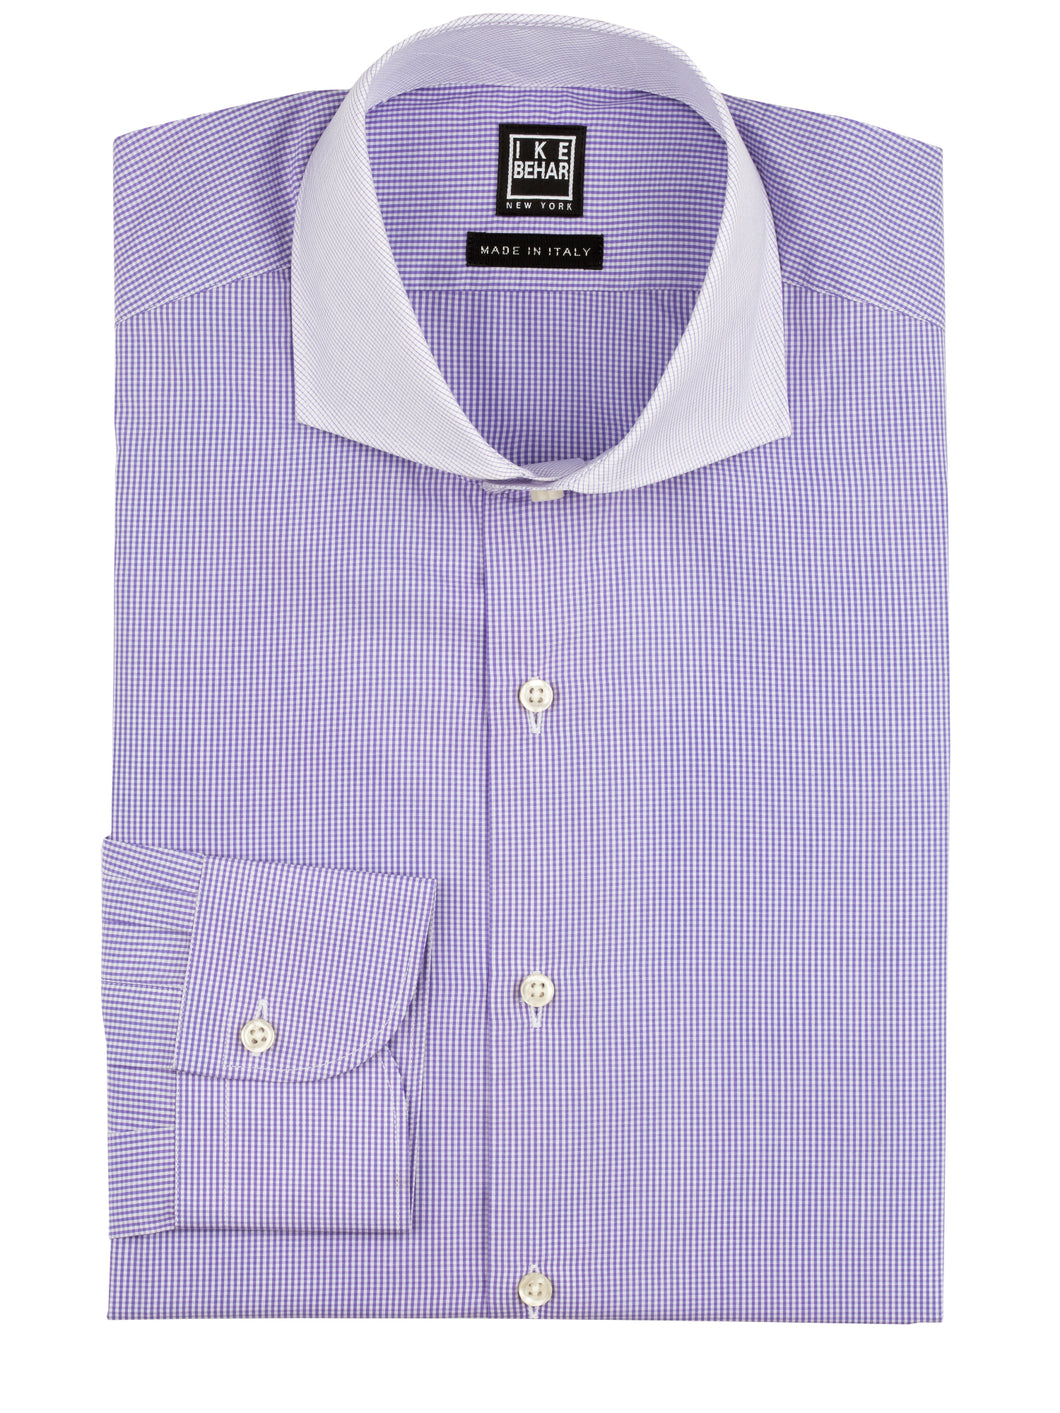 Purple Check-on-Check Contrast Collar Dress Shirt